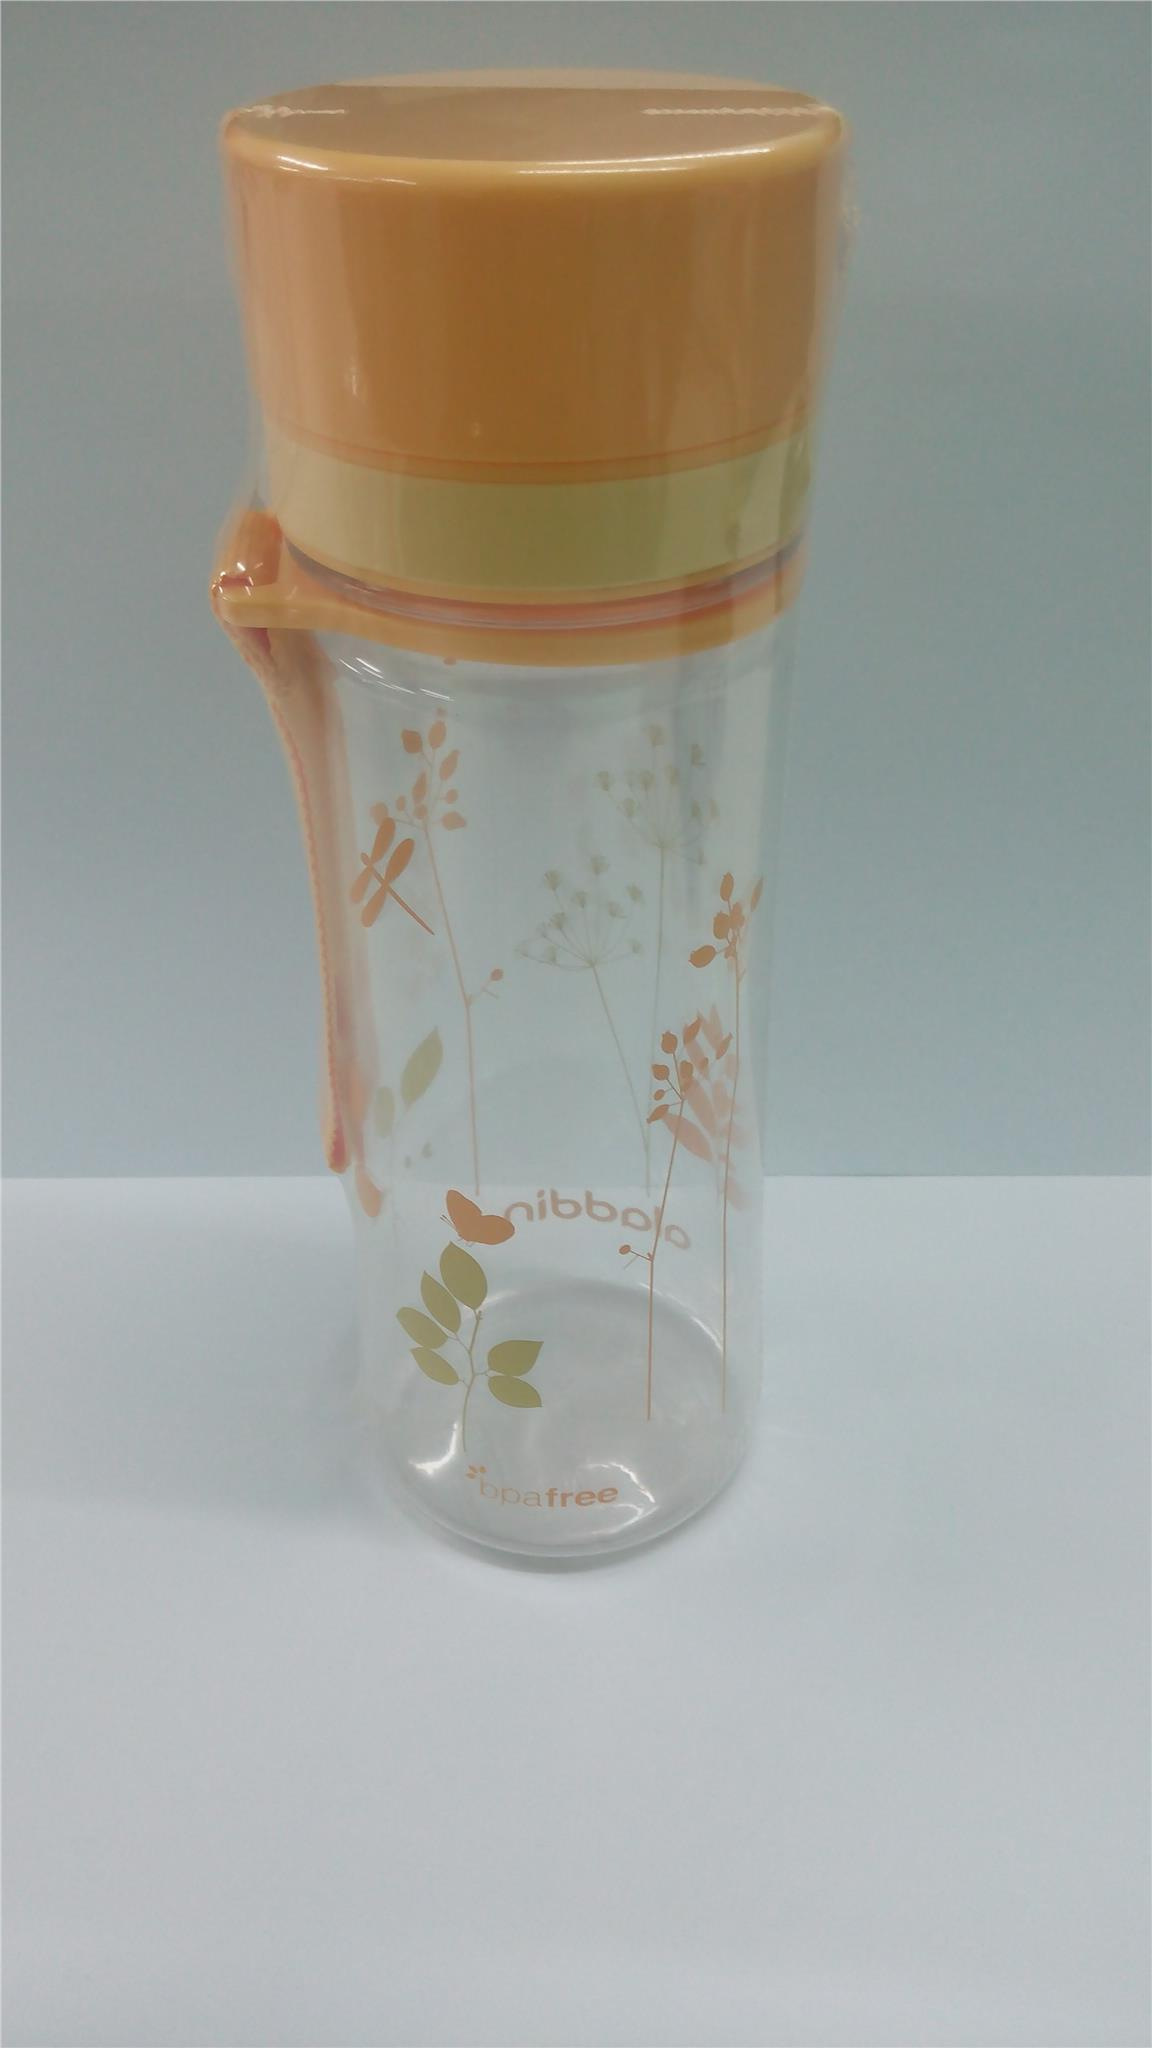 Aladdin Aveo water bottle 0.35l Melon Yellow